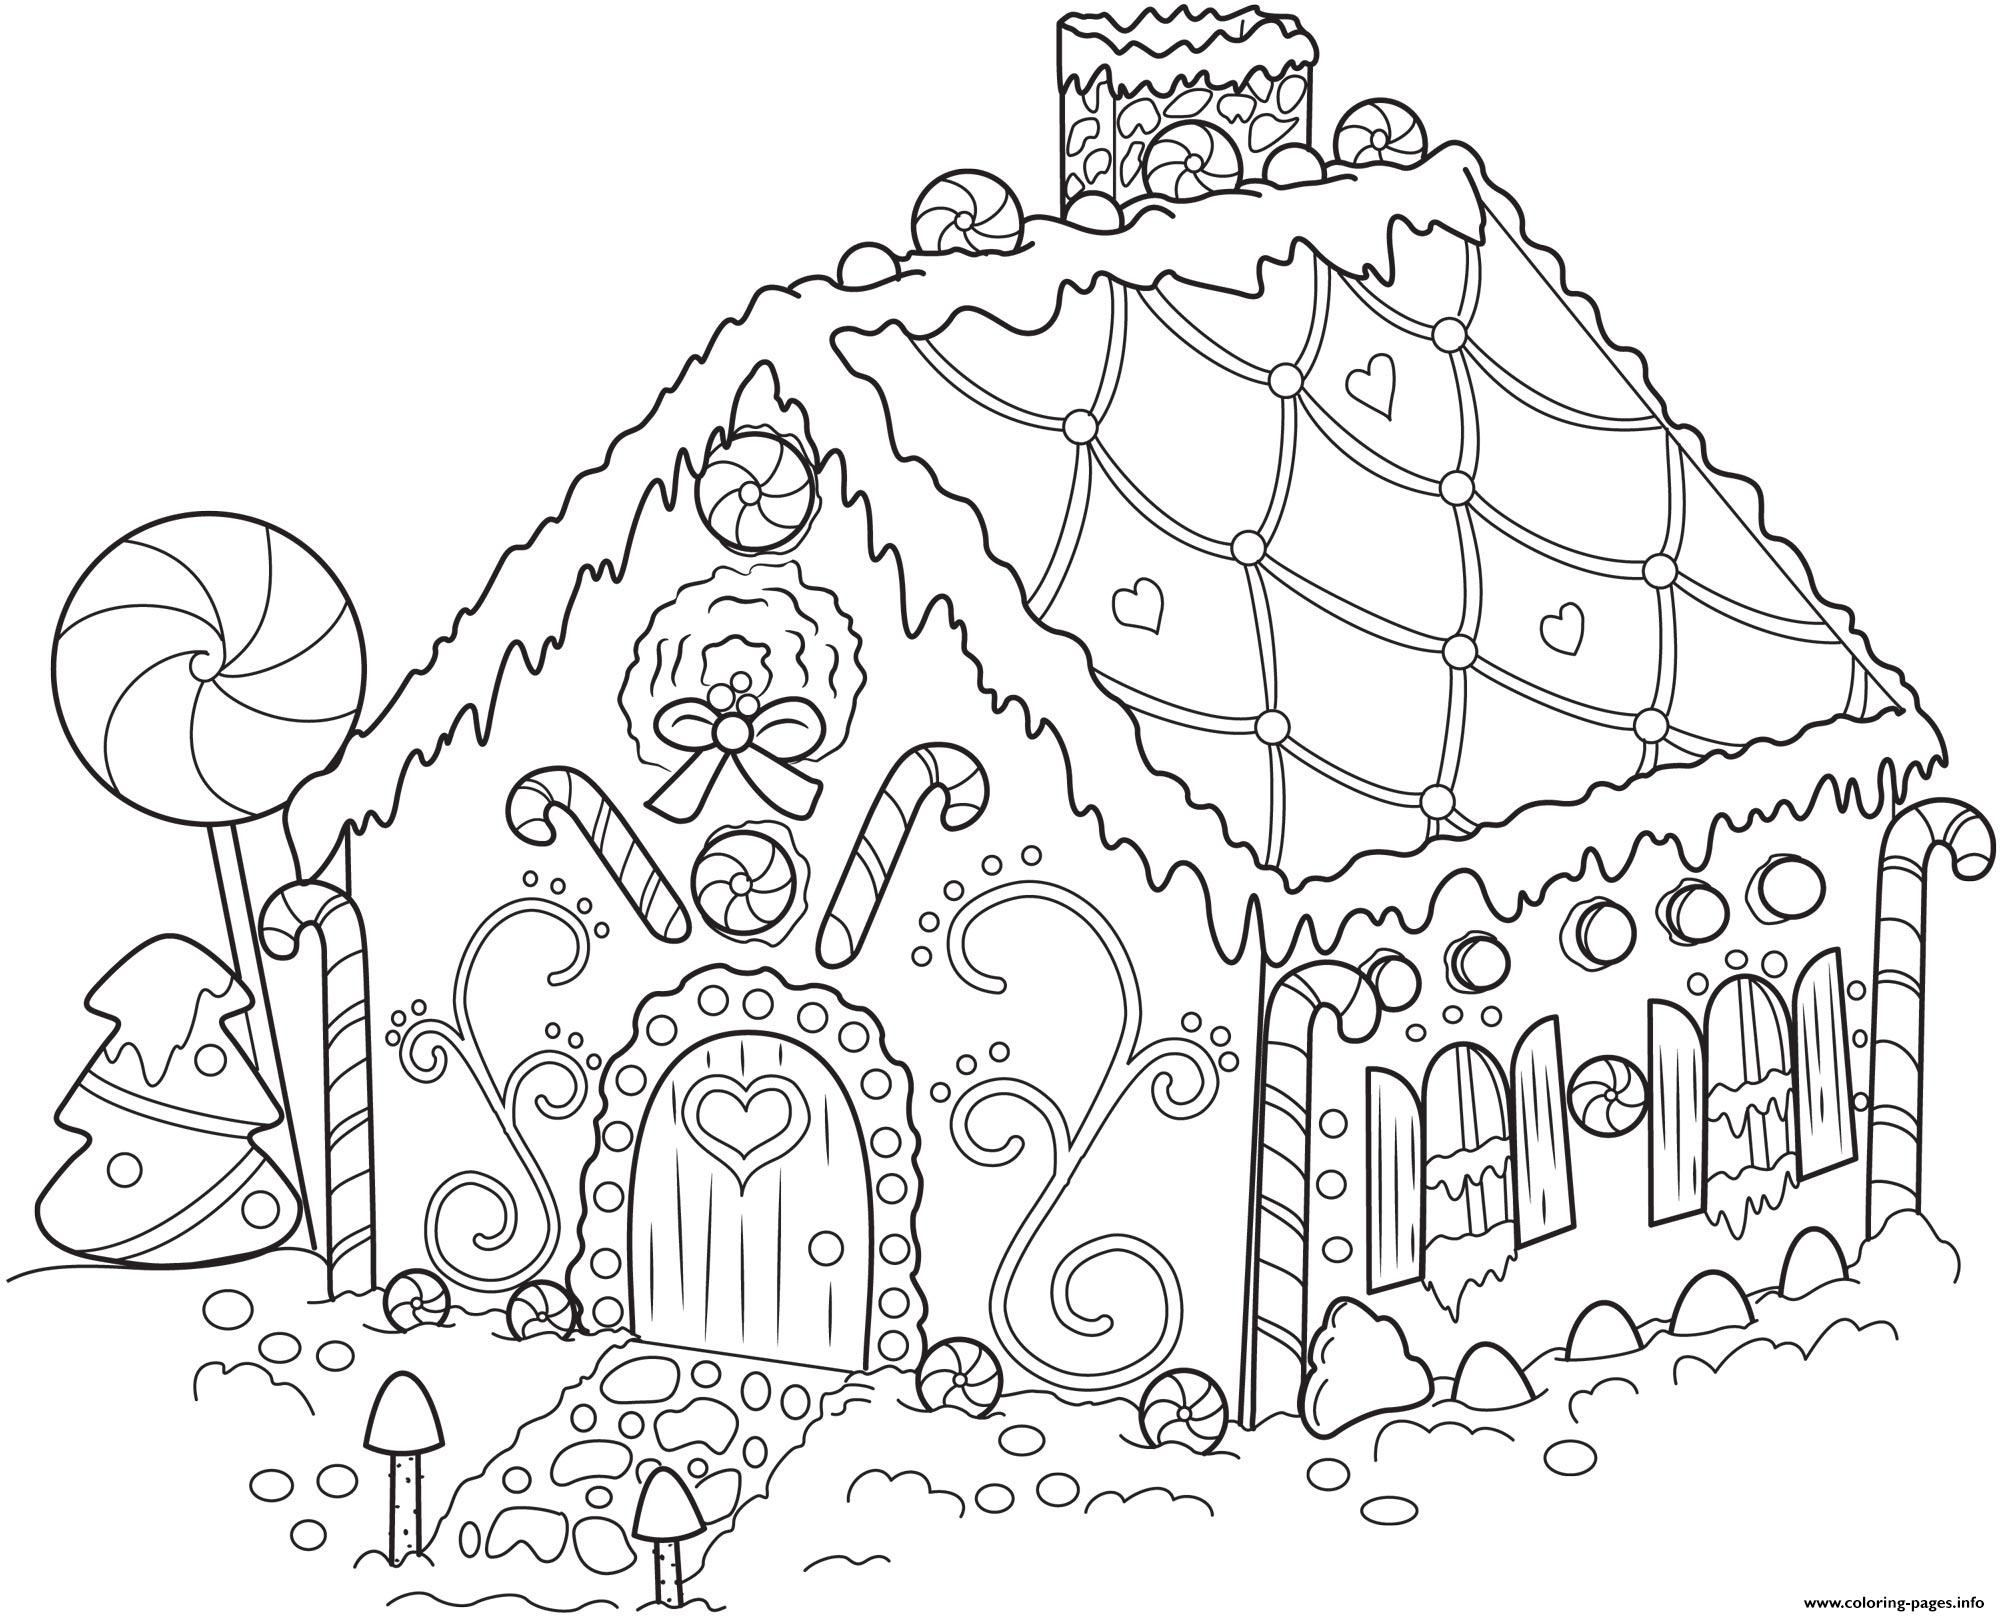 Gingerbread House 1 Coloring Pages Print Download 190 Prints